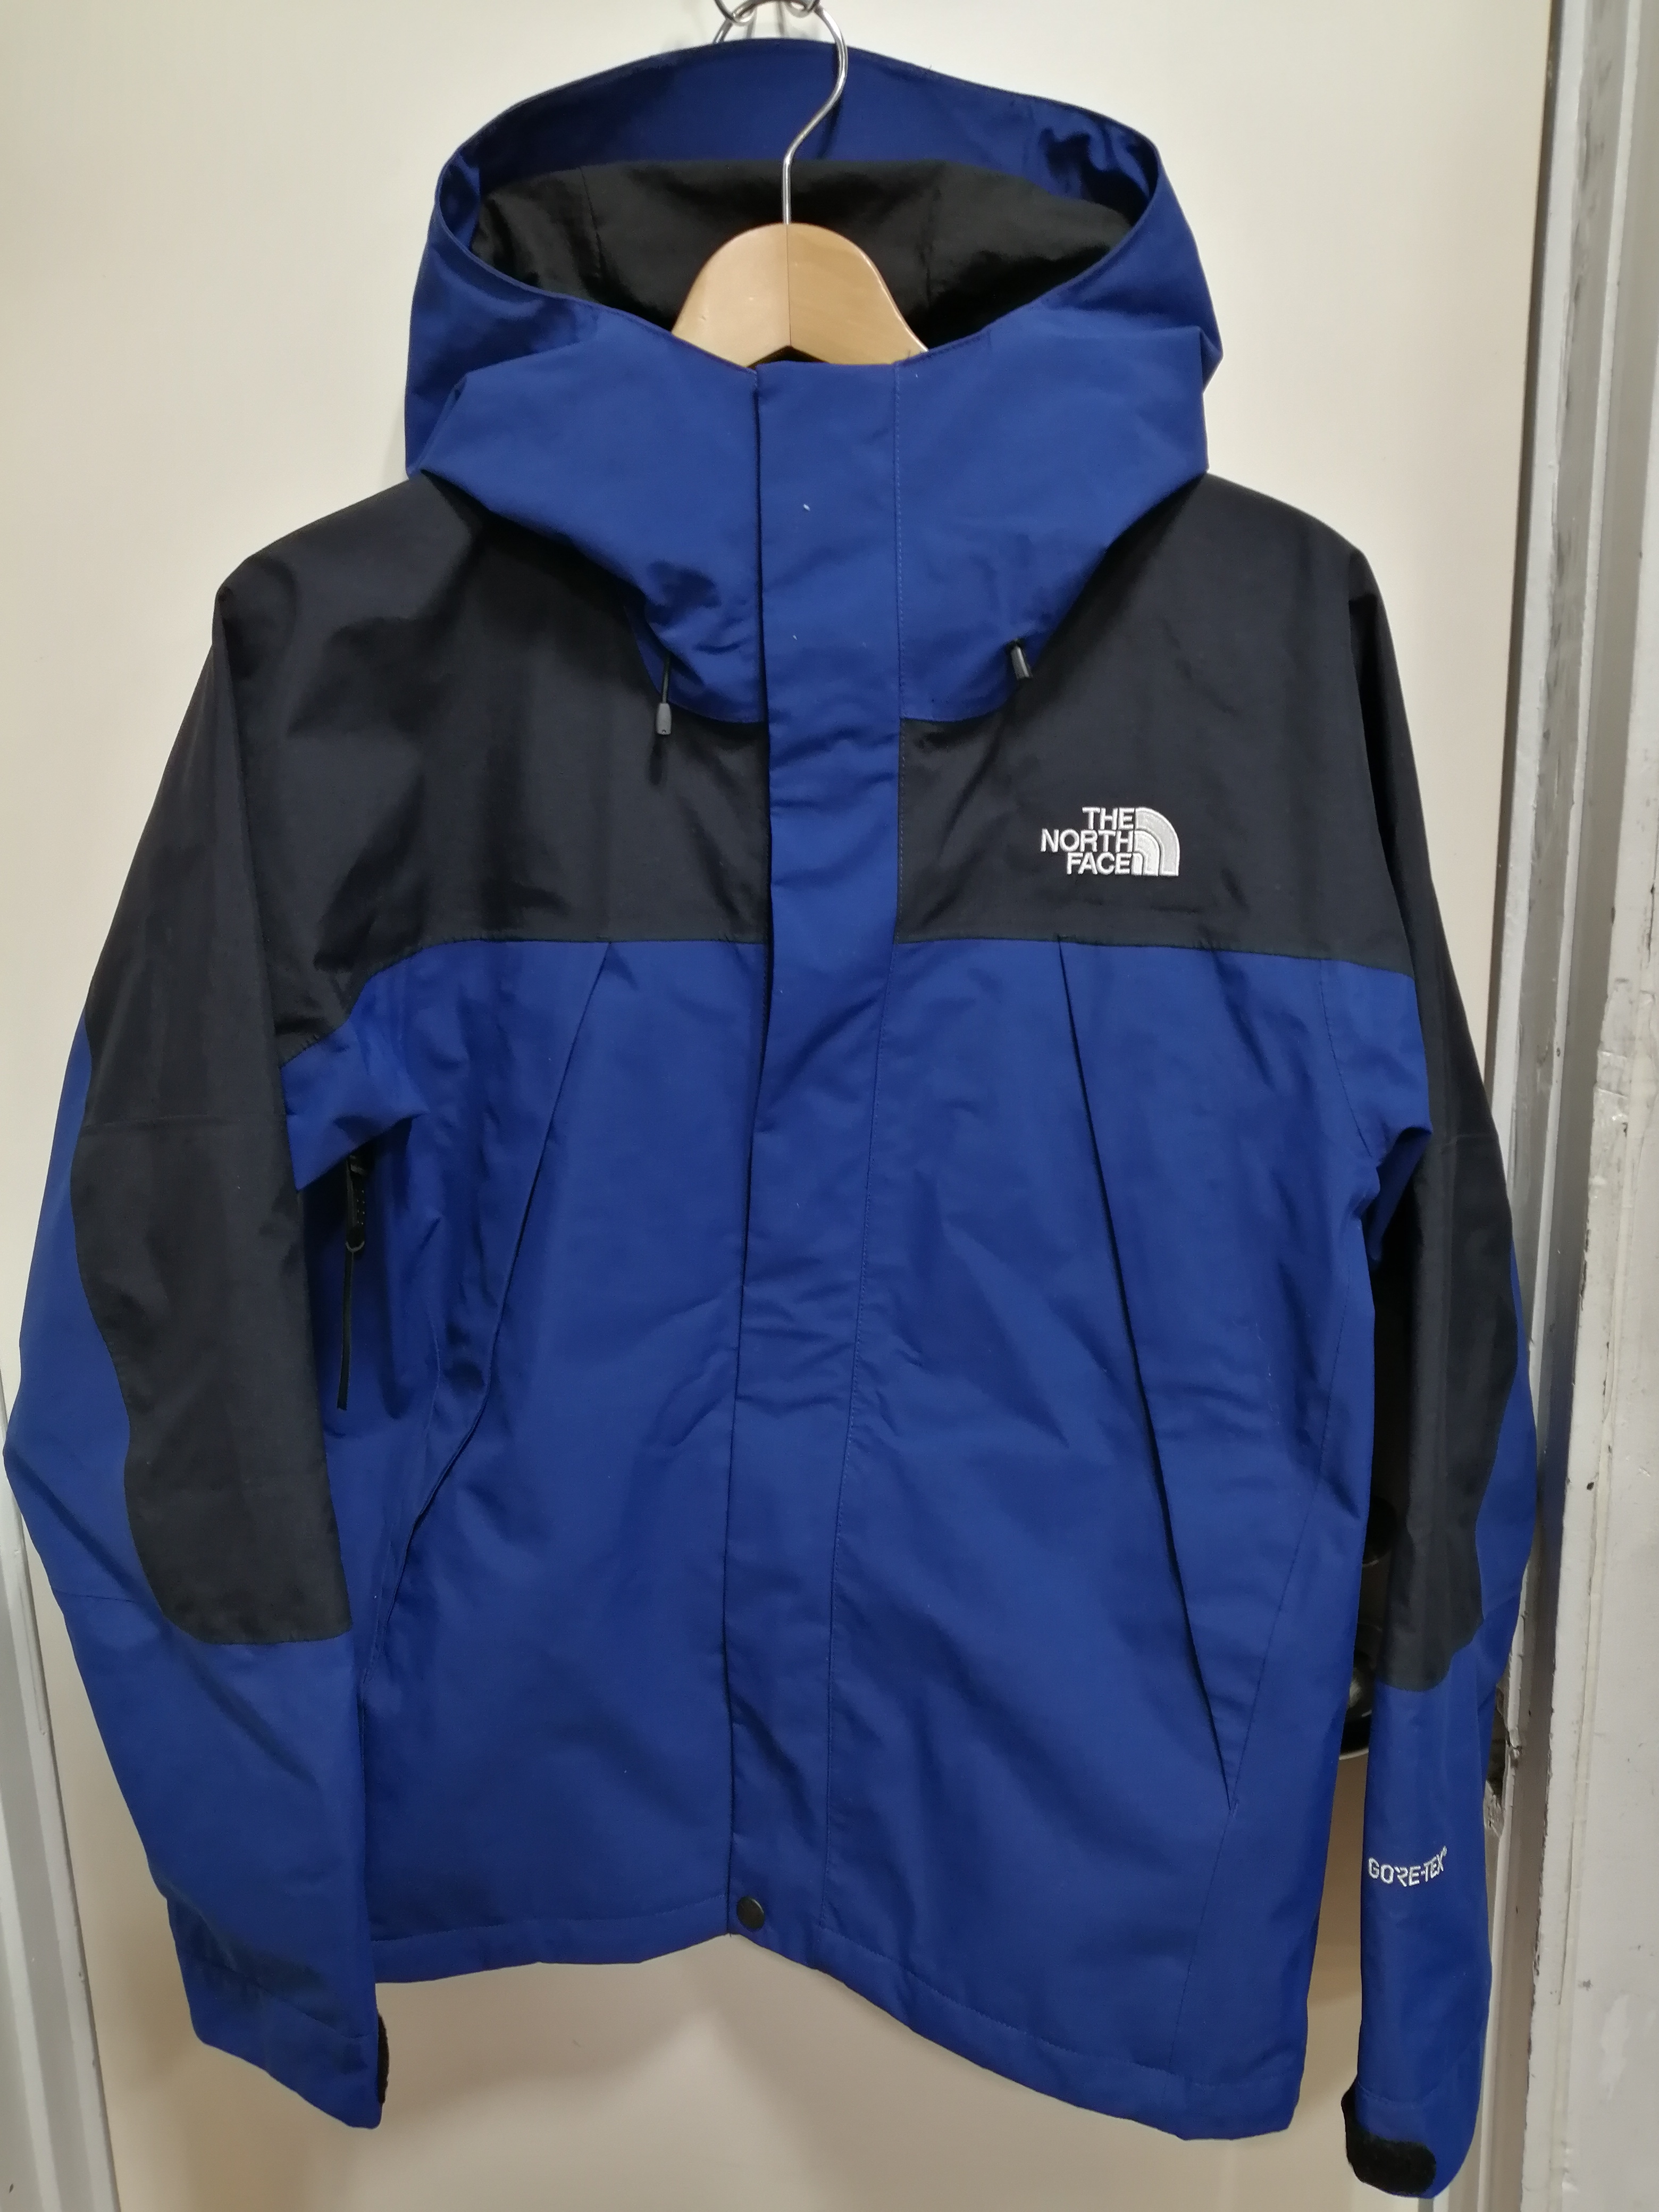 EXPLORATION JACKET|THE NORTH FACE